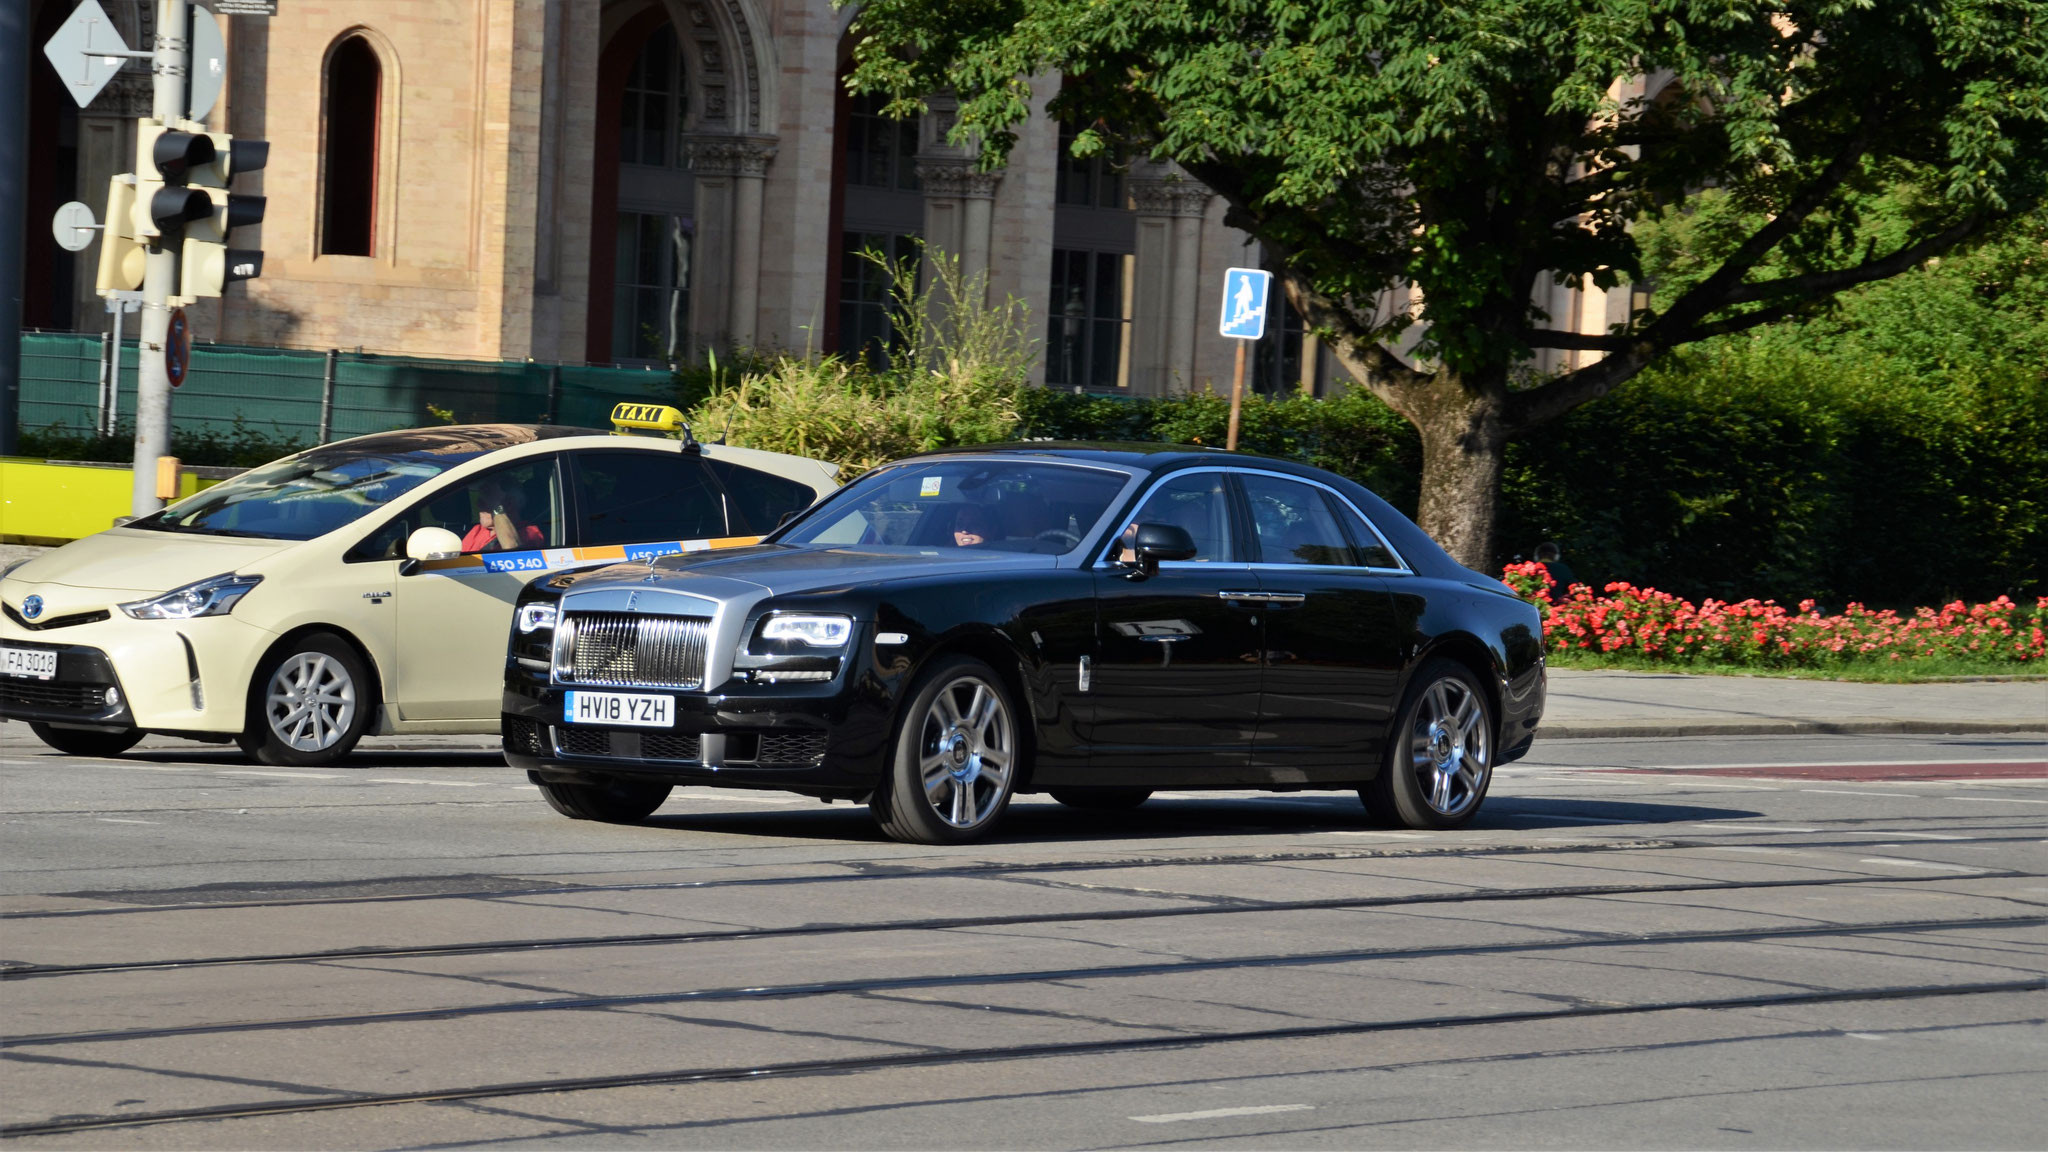 Rolls Royce Ghost Series II - HV18-YZH (GB)